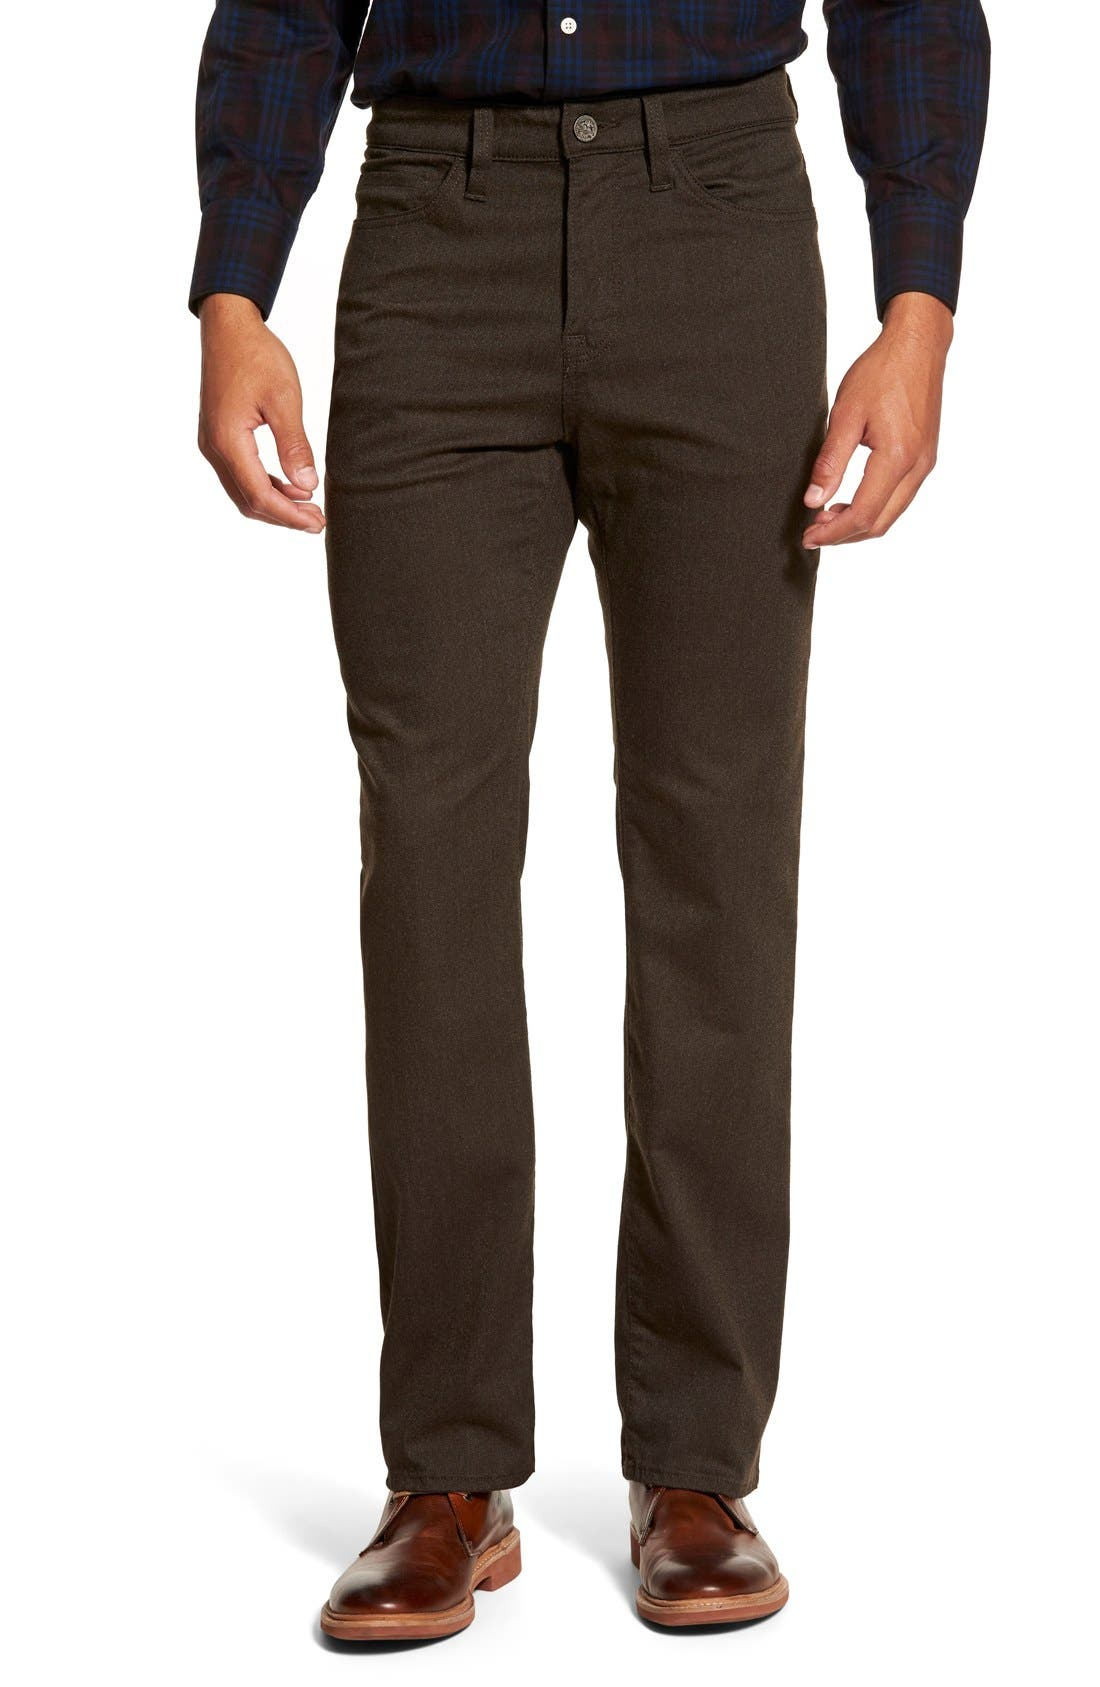 'Charisma' Relaxed Fit Jeans,                         Main,                         color, Mocca Luxe